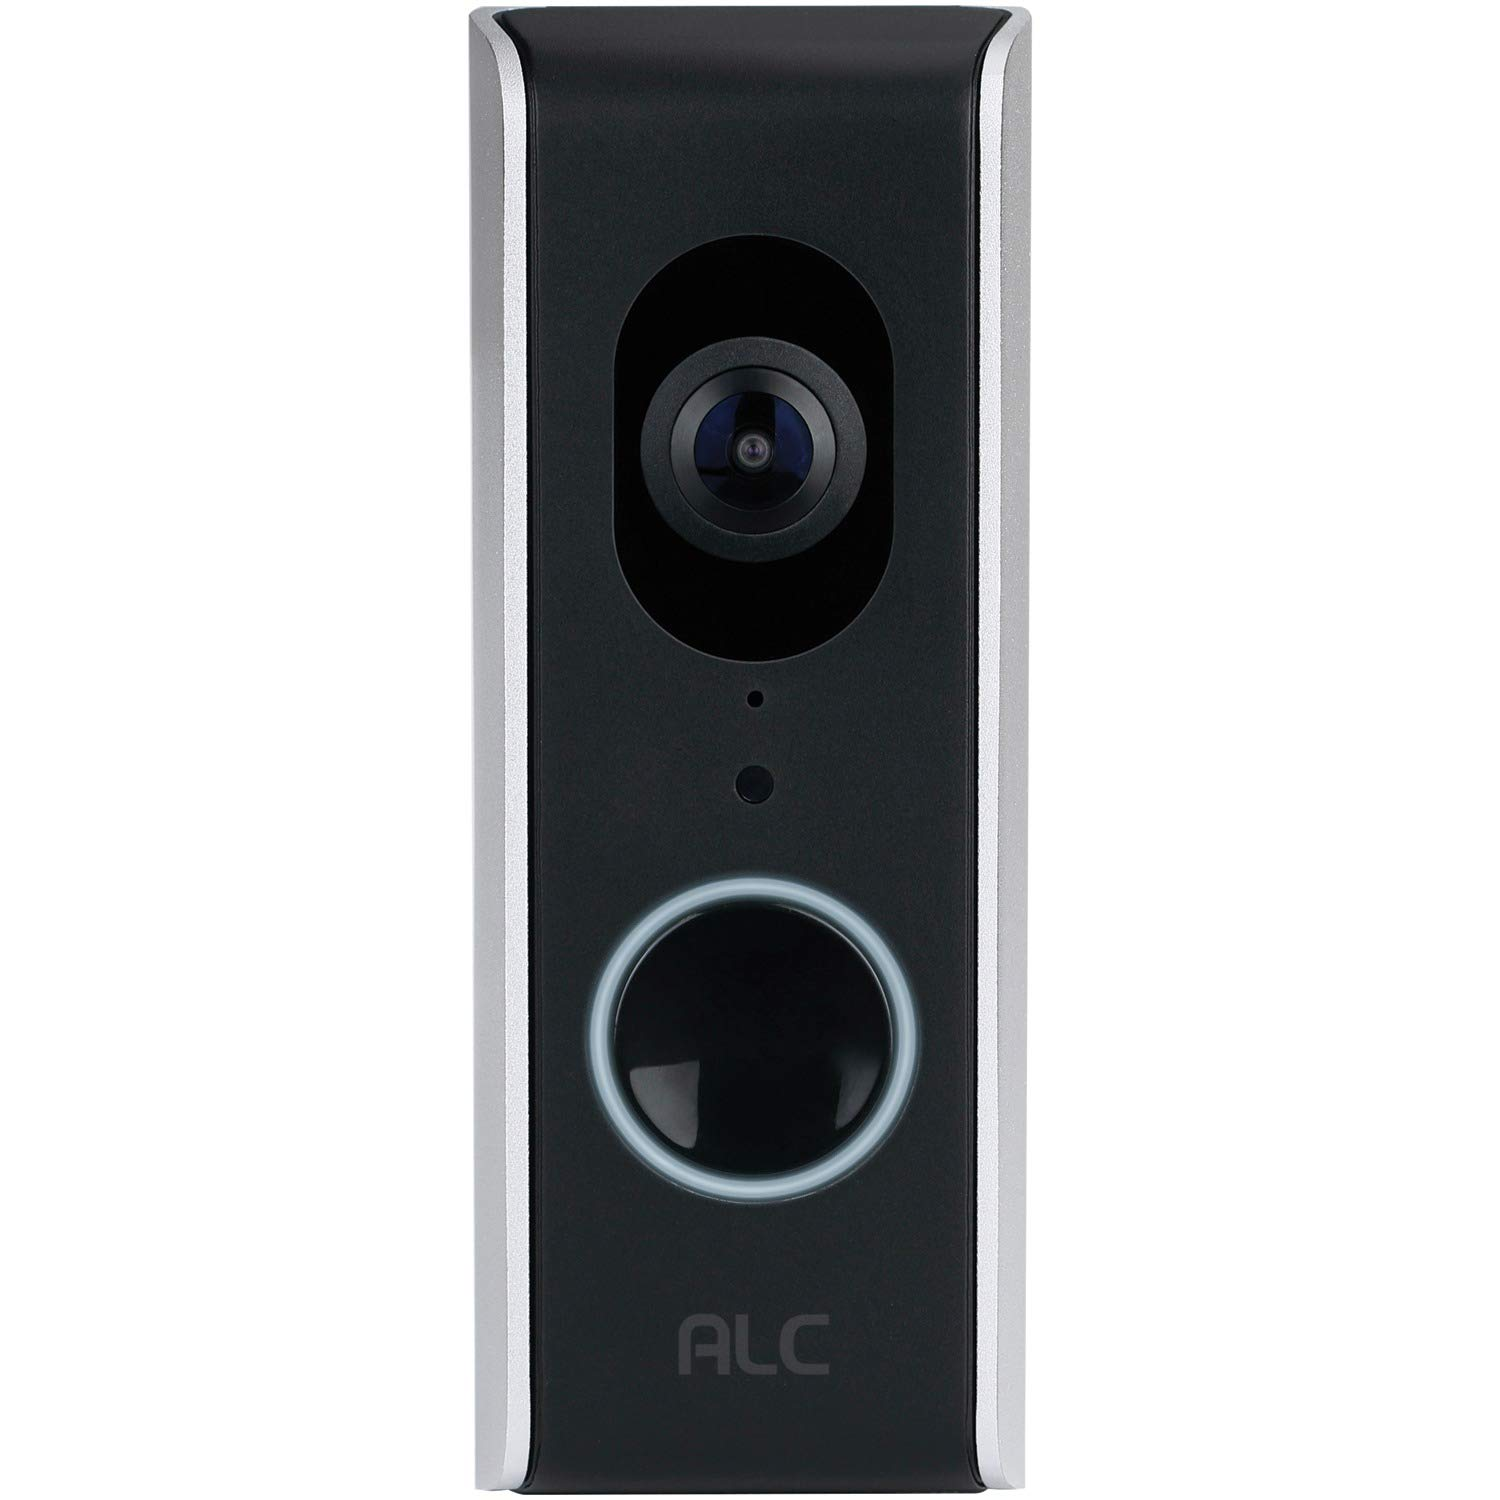 ALC AWF71D Sighthd Video Doorbell with 1080P Full HD Wi-Fi Camera by ALC (Image #1)